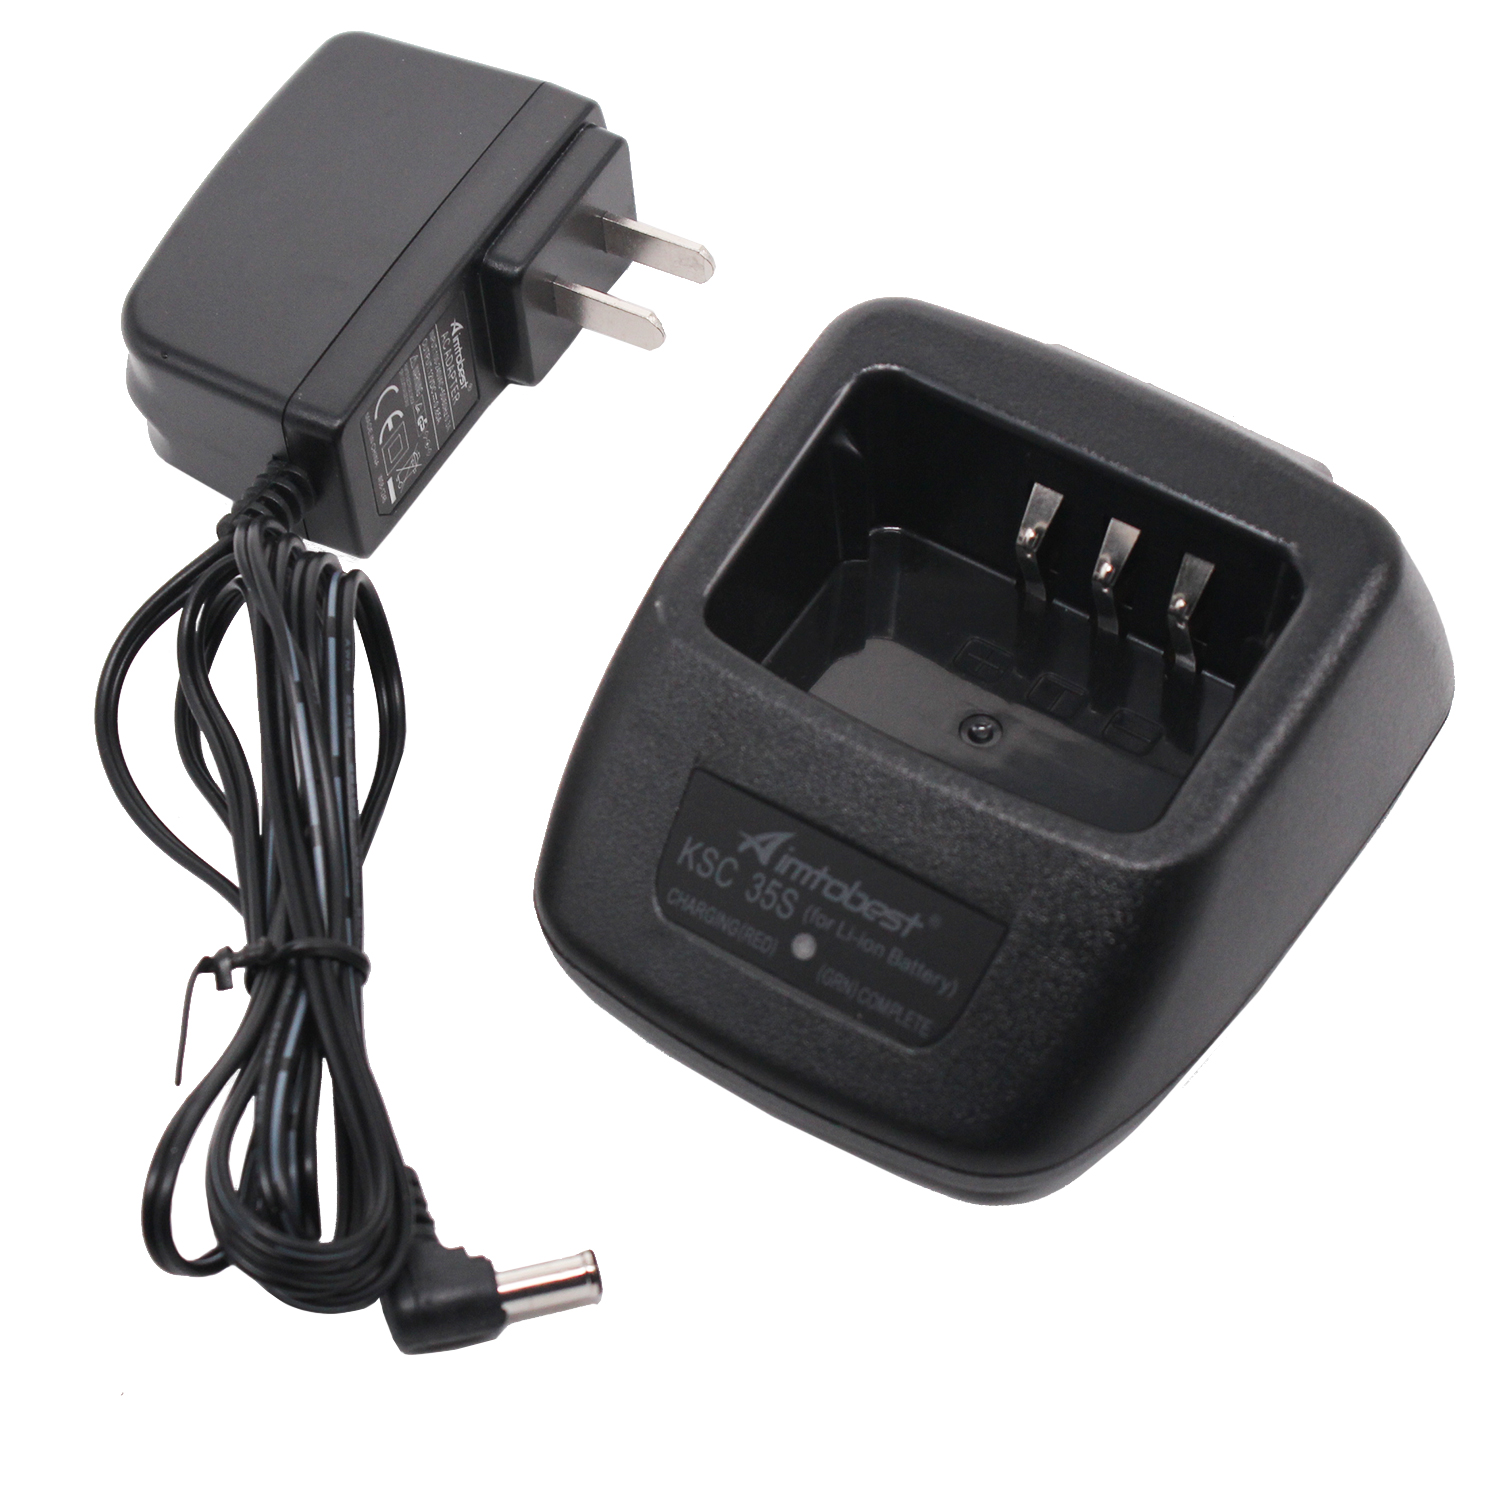 Base no power supply for Kenwood TK-2000E Walkie Talkie Li-ion Battery Charger